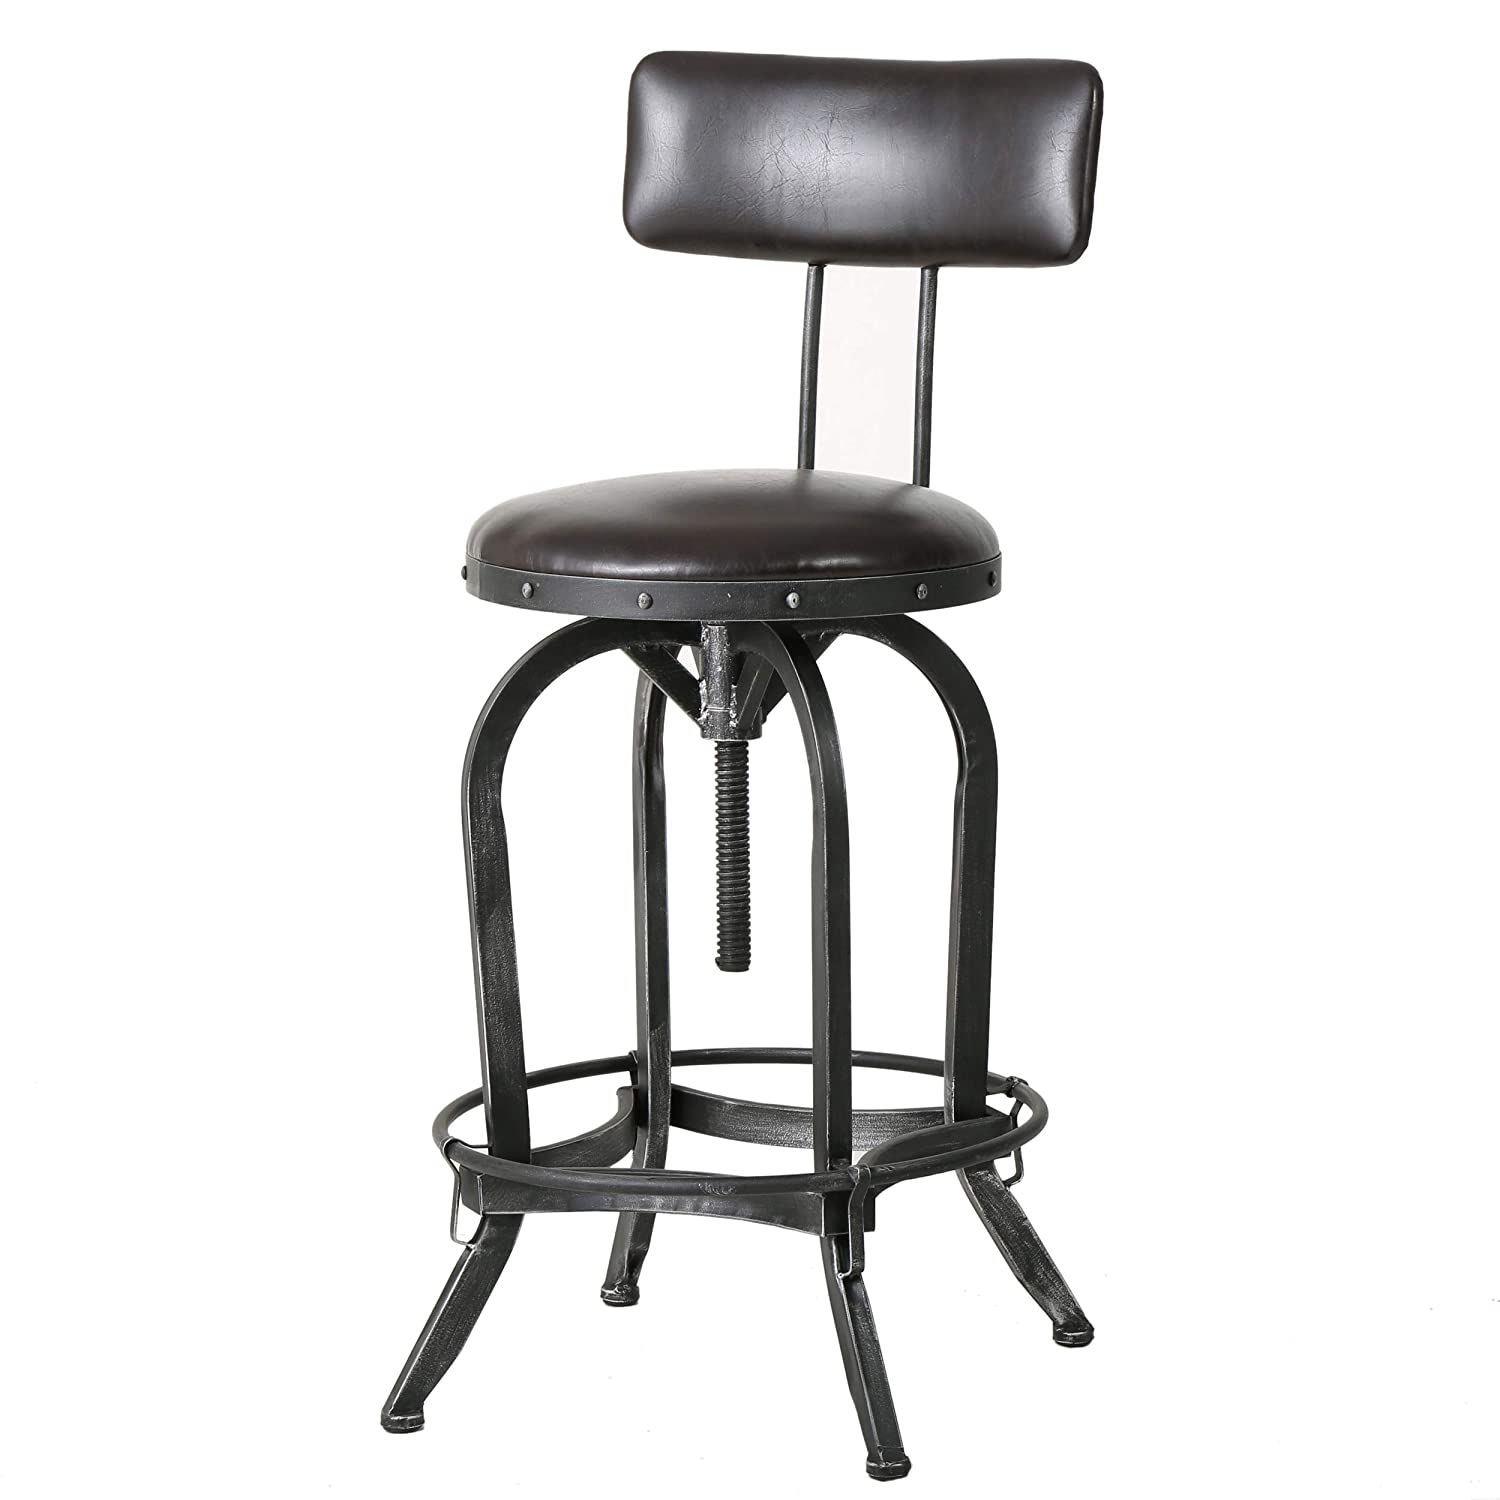 Samthorn Metal Industrial Barstool with Backrest (Brown Recast Leather)